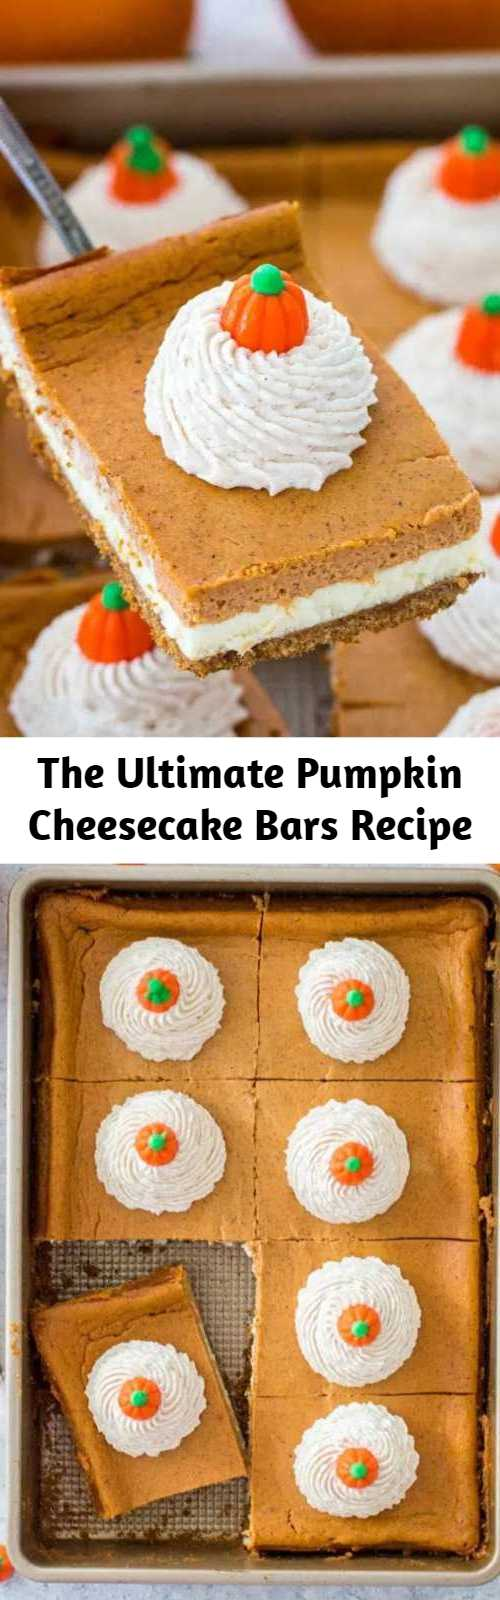 The Ultimate Pumpkin Cheesecake Bars Recipe - Pumpkin Cheesecake Bars are luxuriously creamy and rich, with lots of pumpkin flavor. Topped with a hefty amount of homemade cinnamon whipped cream.